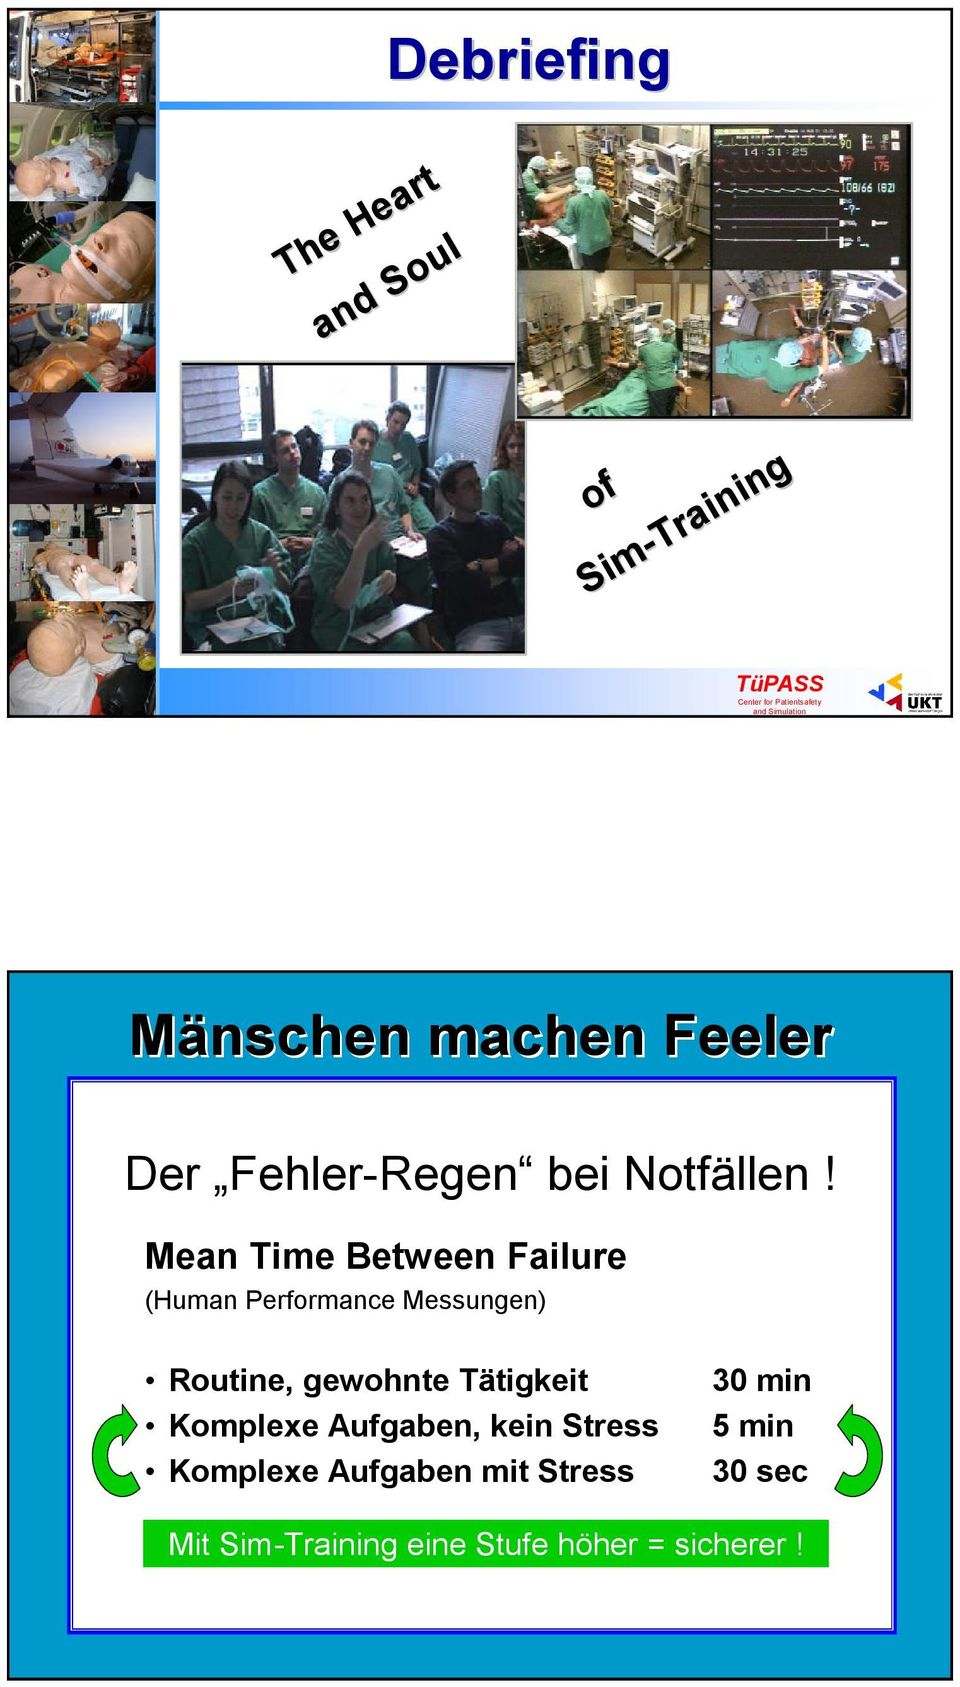 Mean Time Between Failure (Human Performance Messungen) Routine, gewohnte Tätigkeit